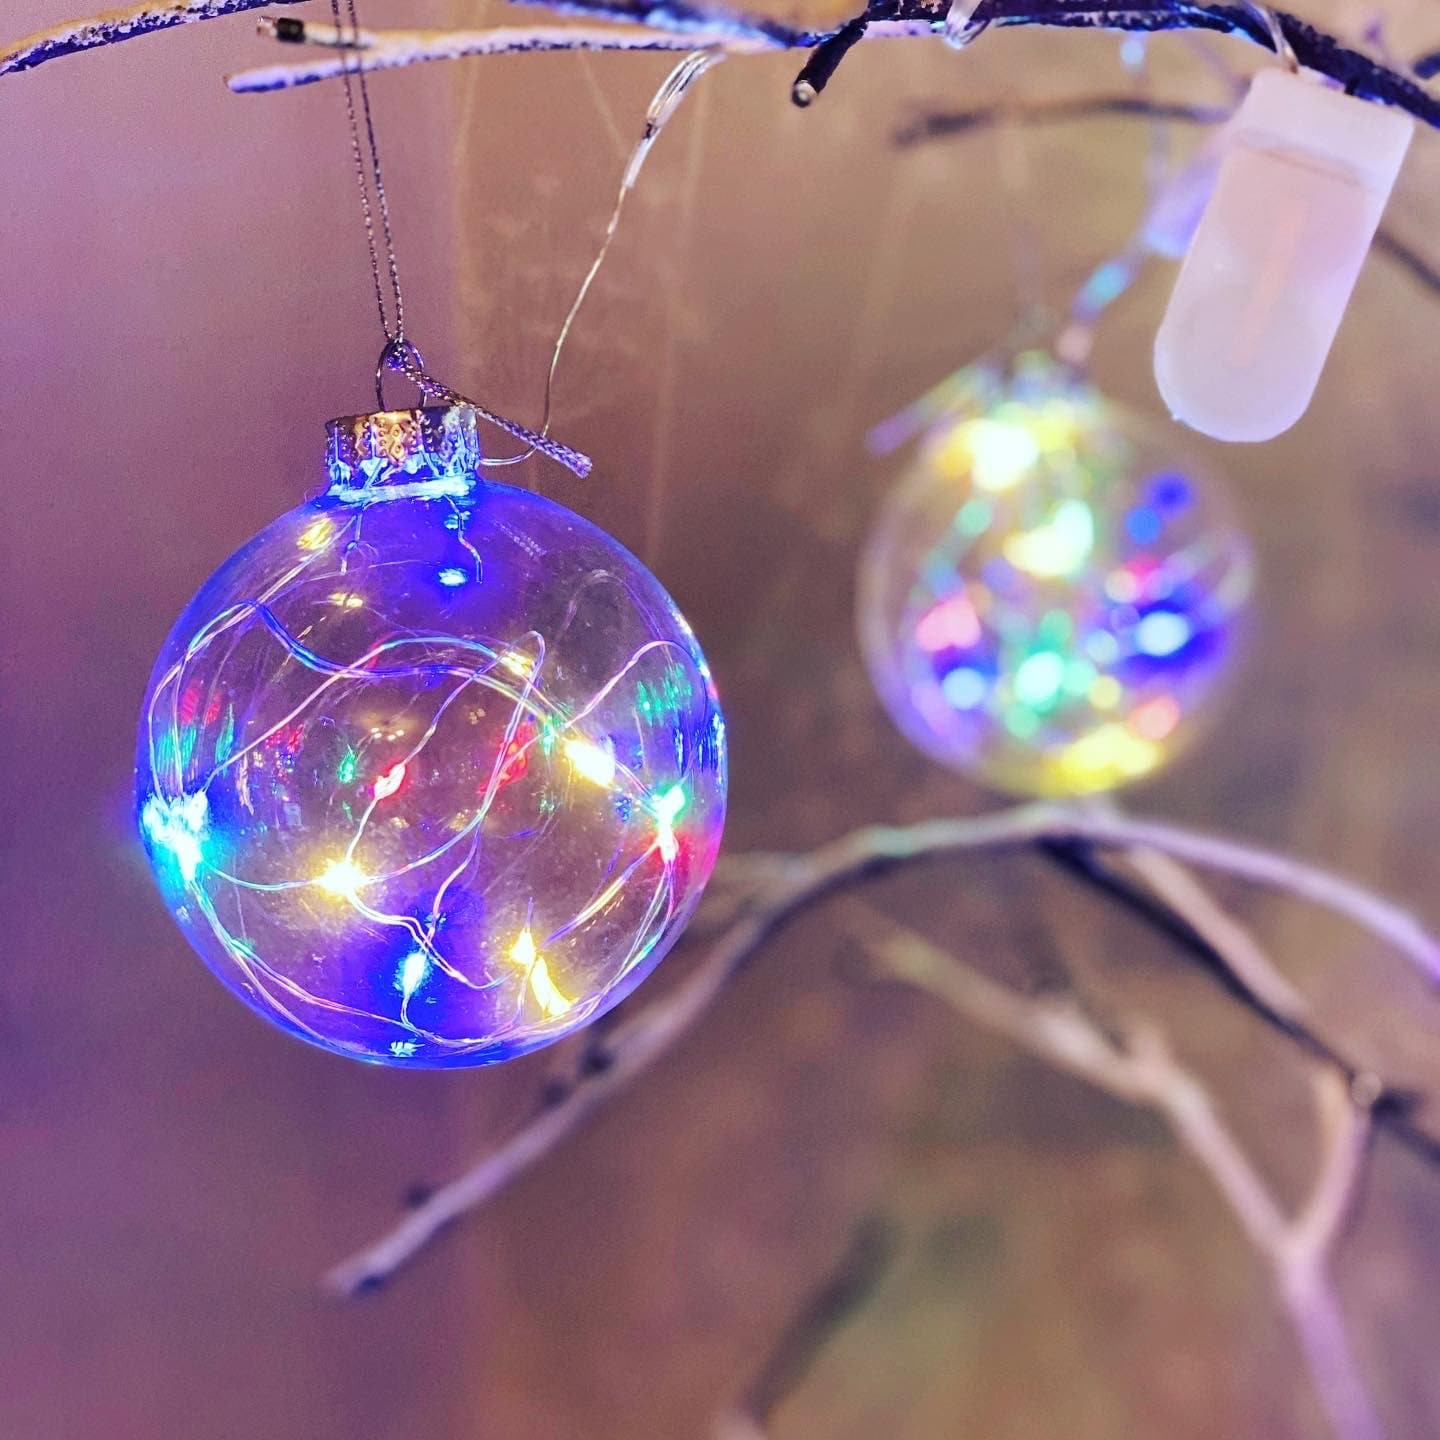 Glass light up Christmas bauble